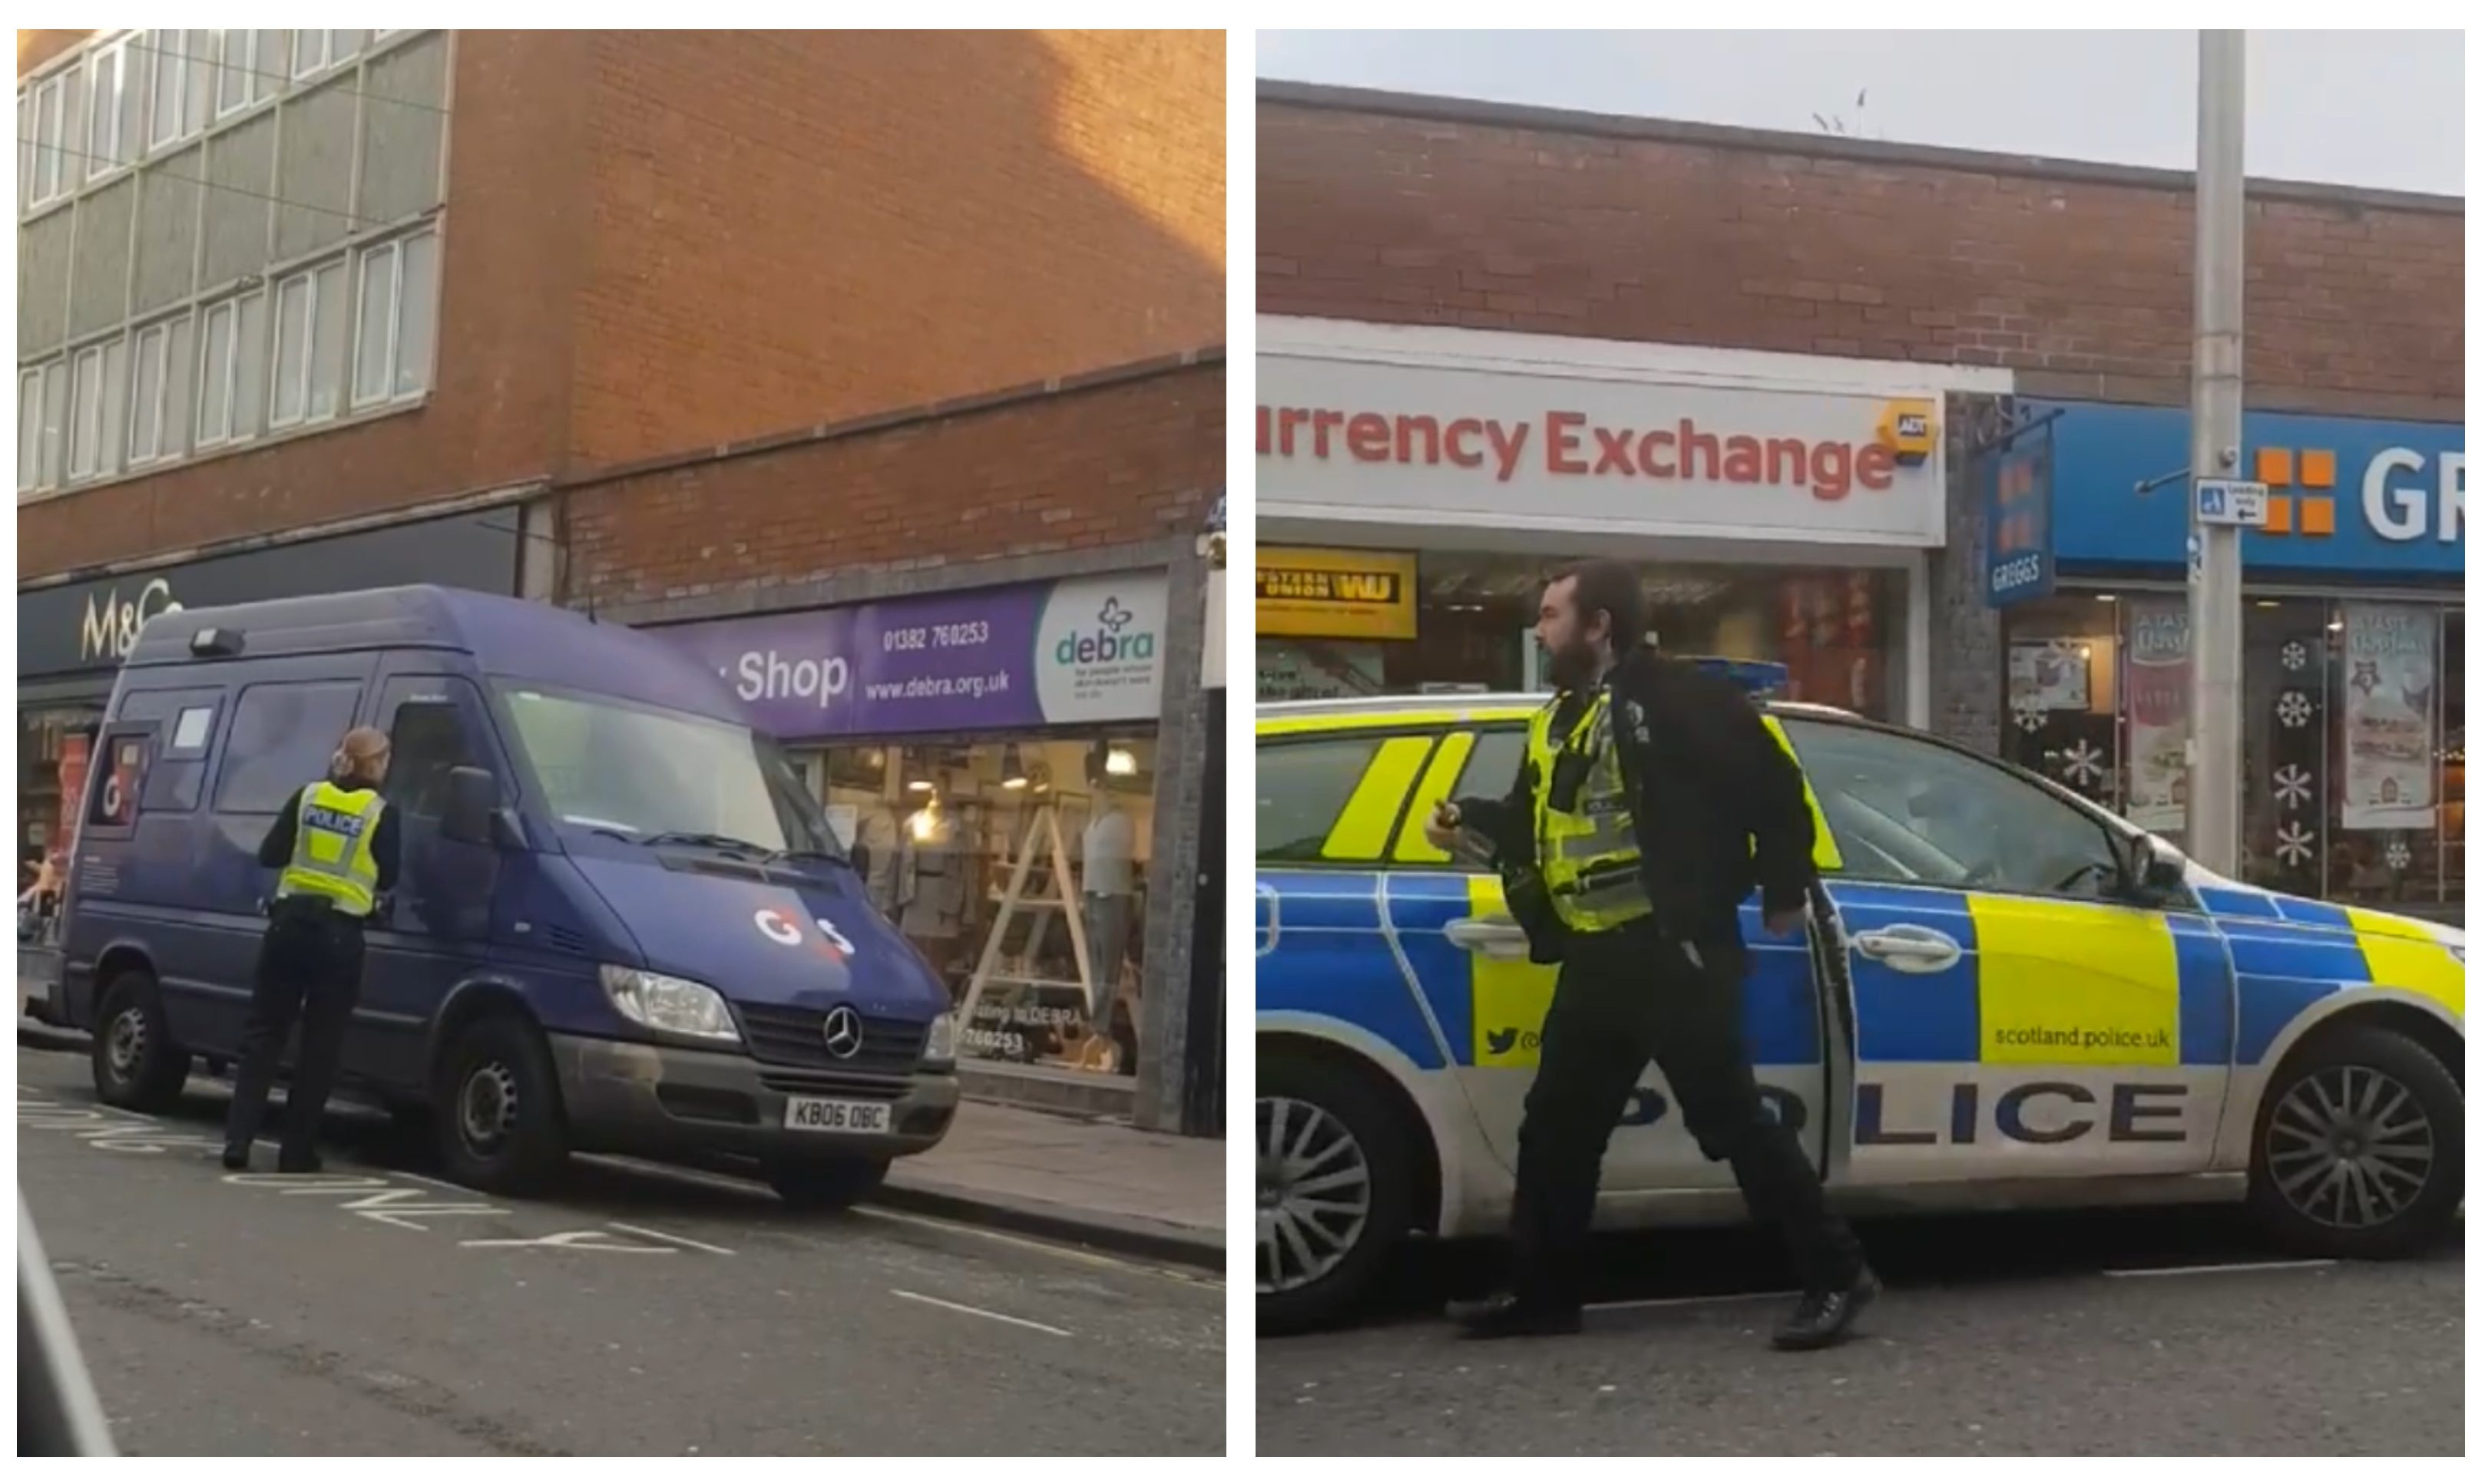 Police were called to the G4S van in Broughty Ferry.